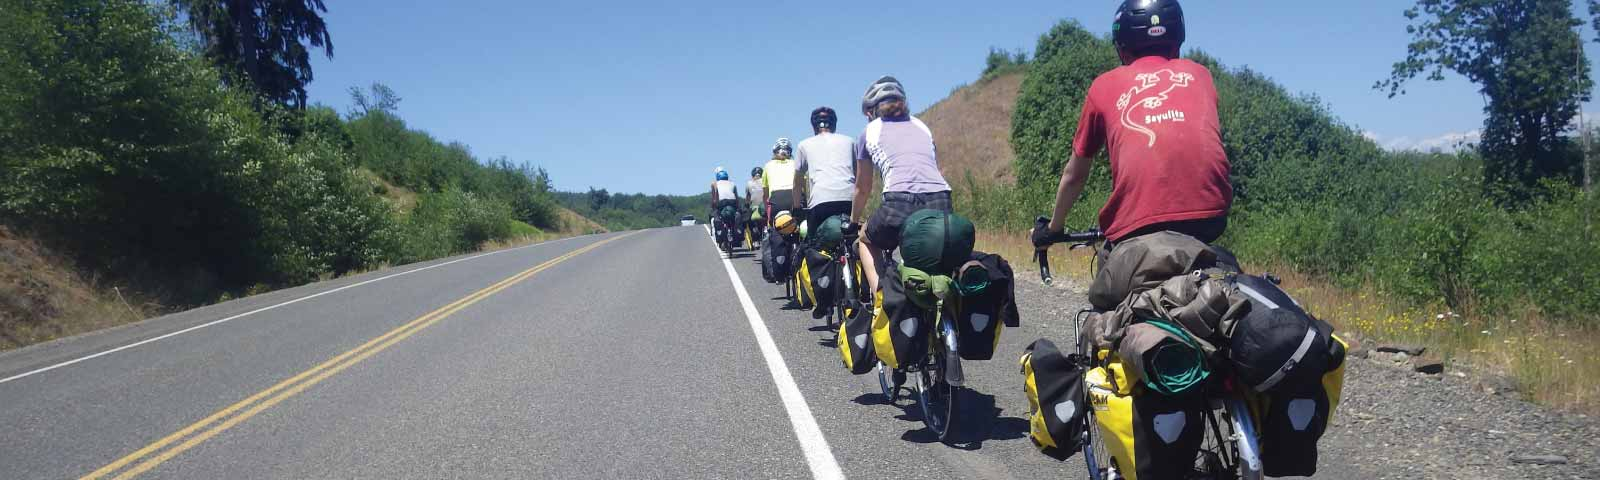 Touring Washington by bike in summer camp